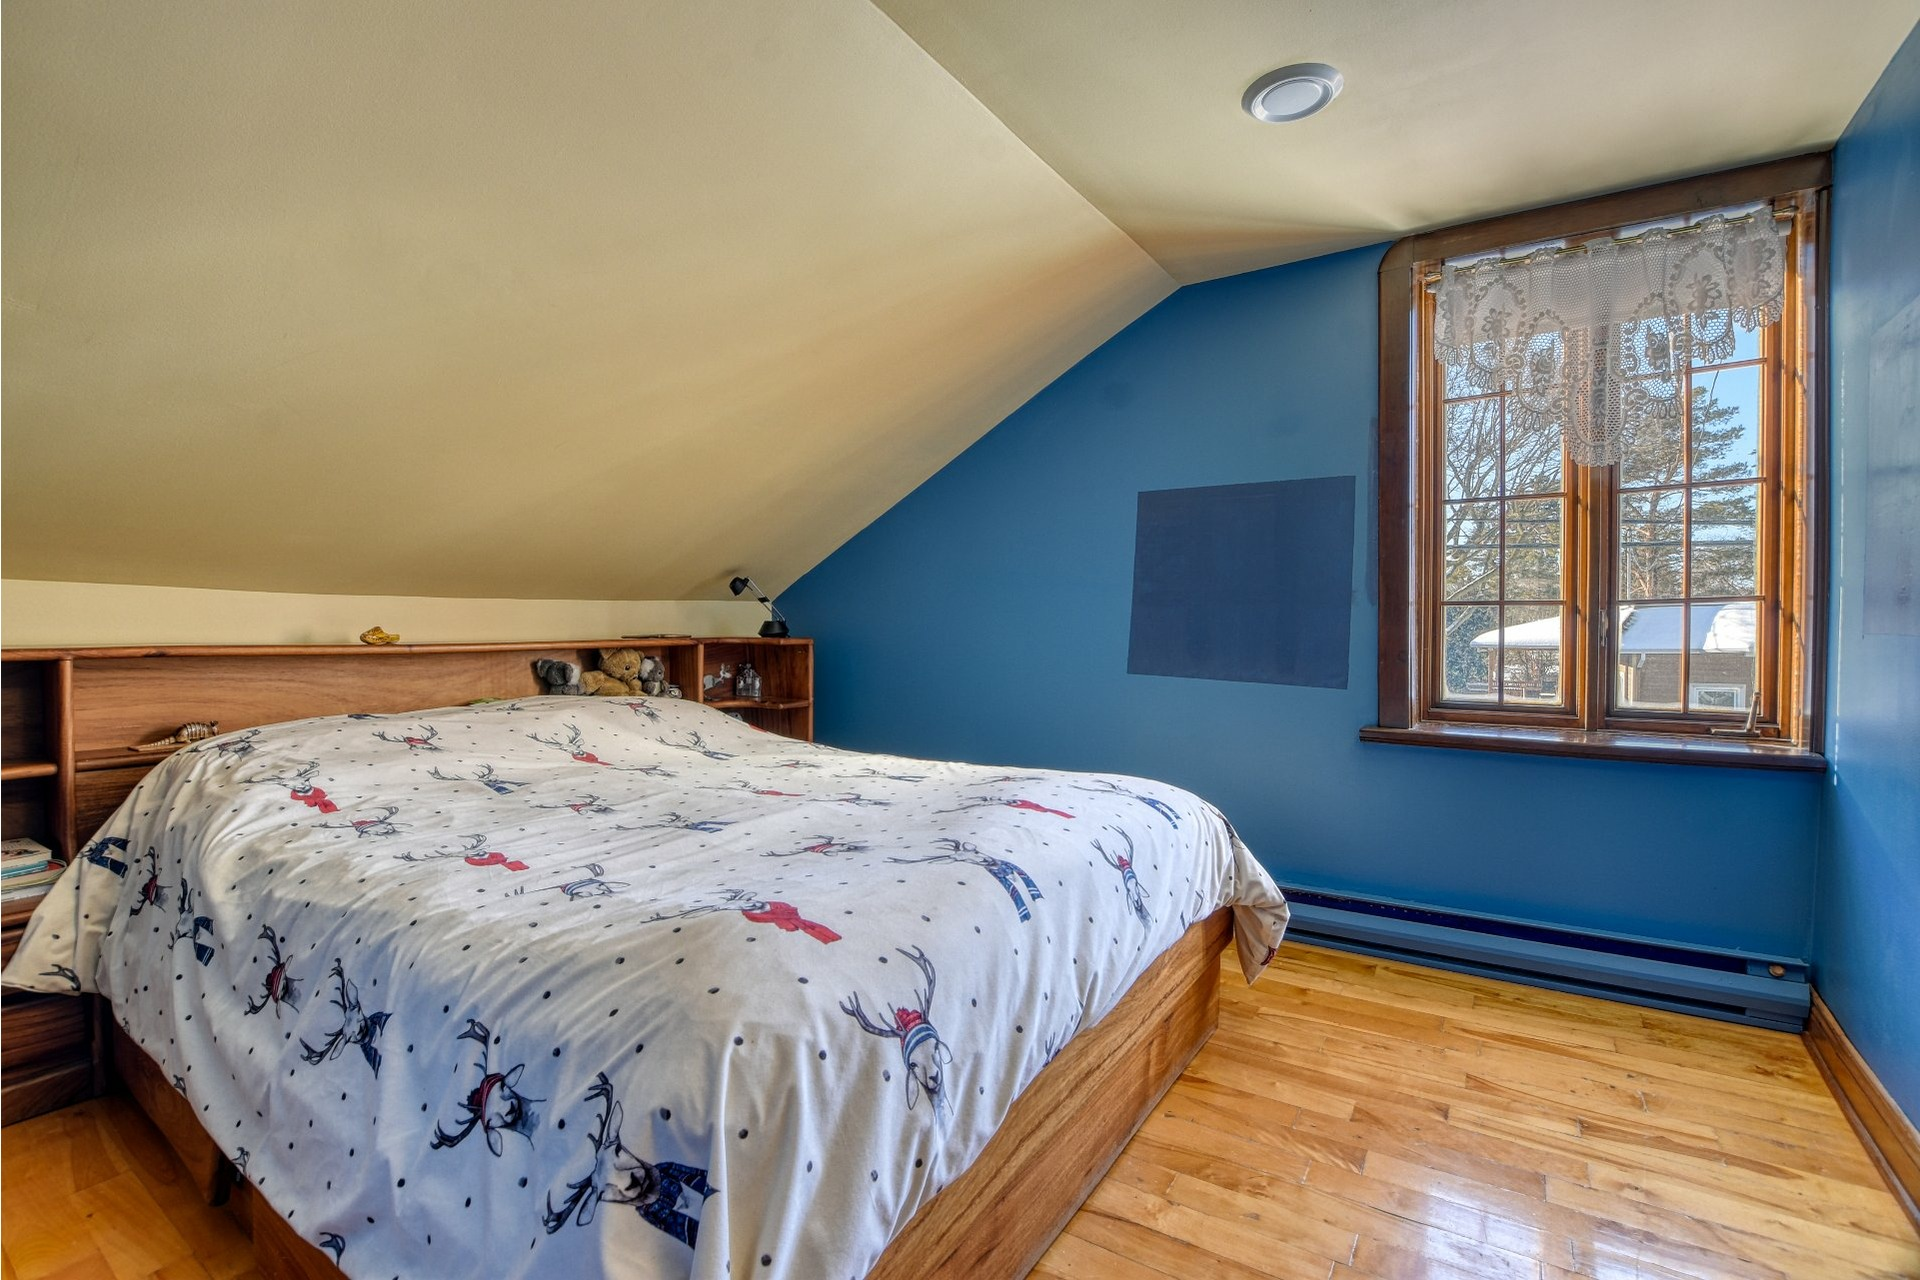 image 15 - House For sale Saint-Laurent Montréal  - 10 rooms